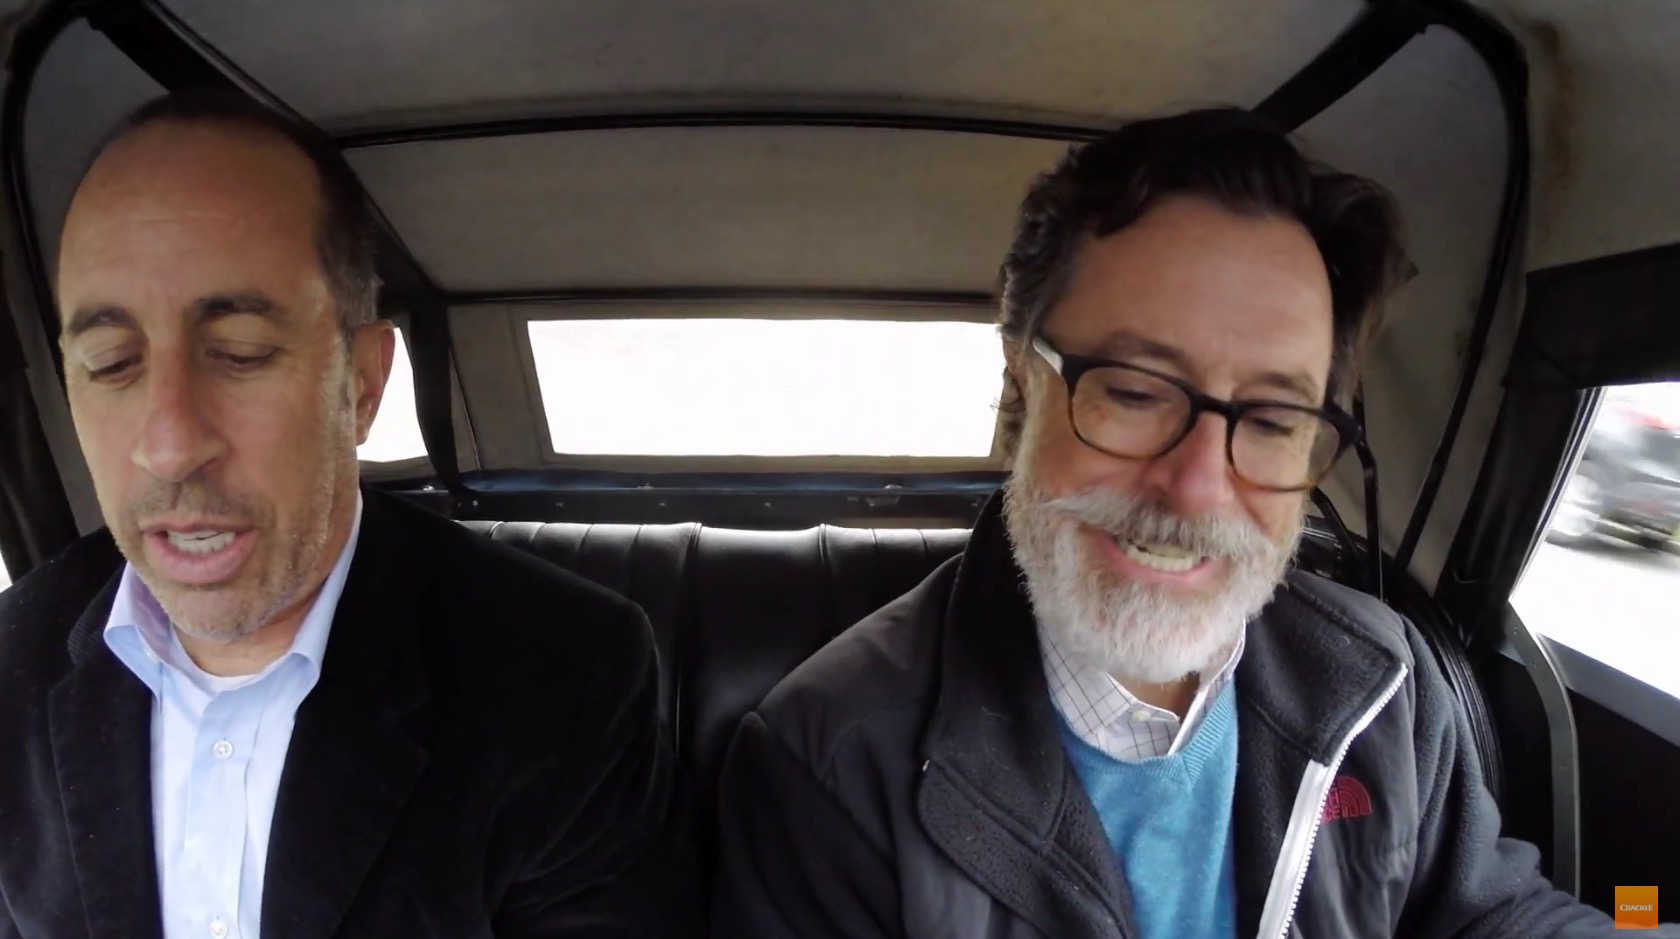 Comedians Cars Getting Coffee Colbert